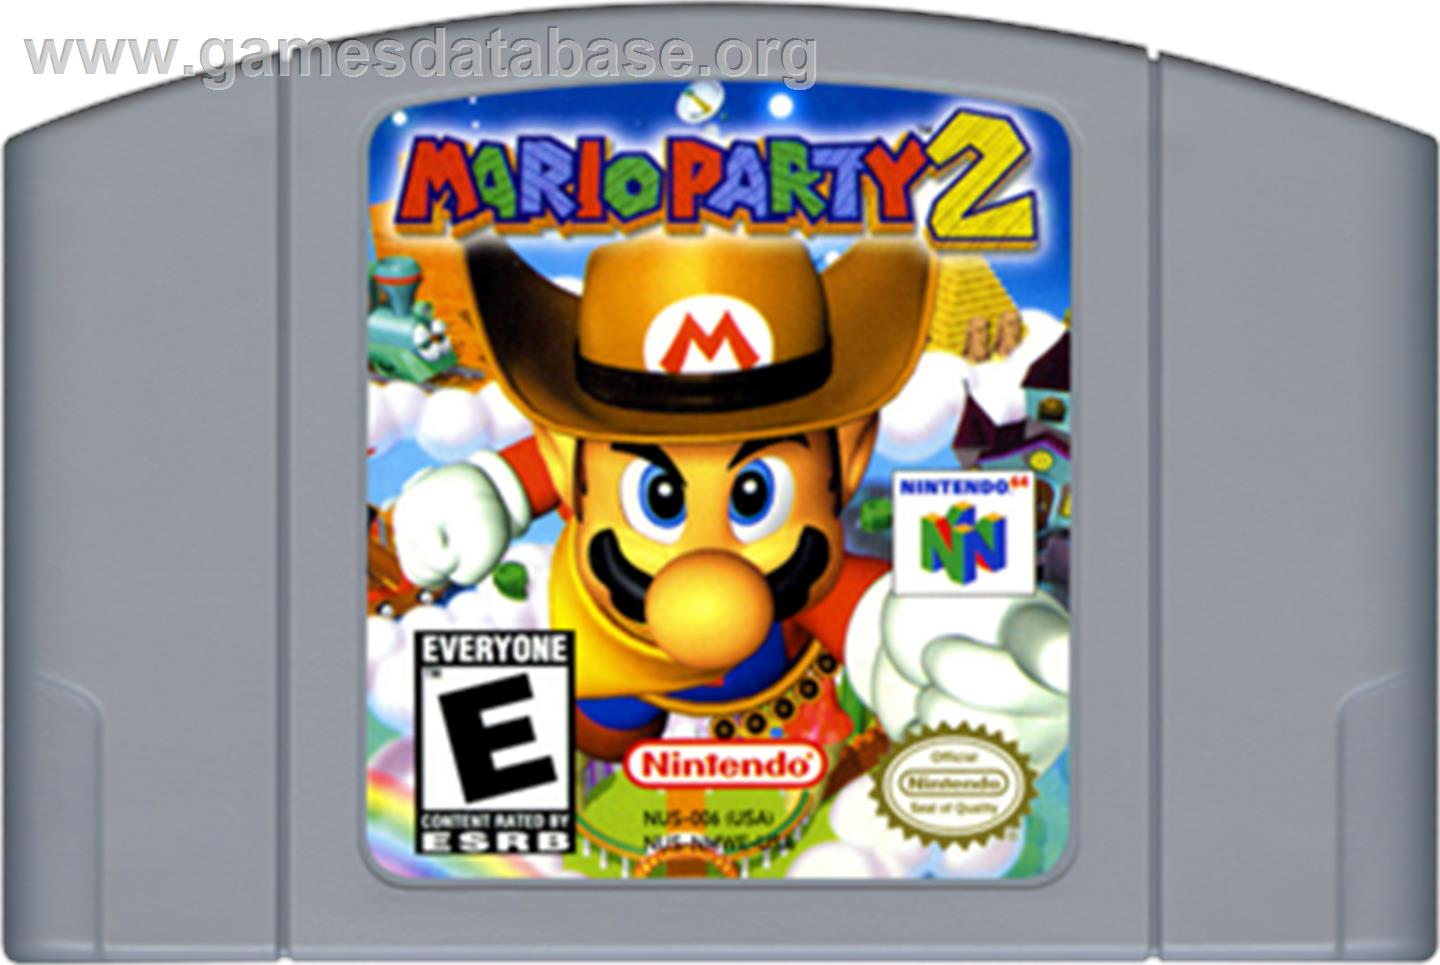 Mario Party 2 Cartridge